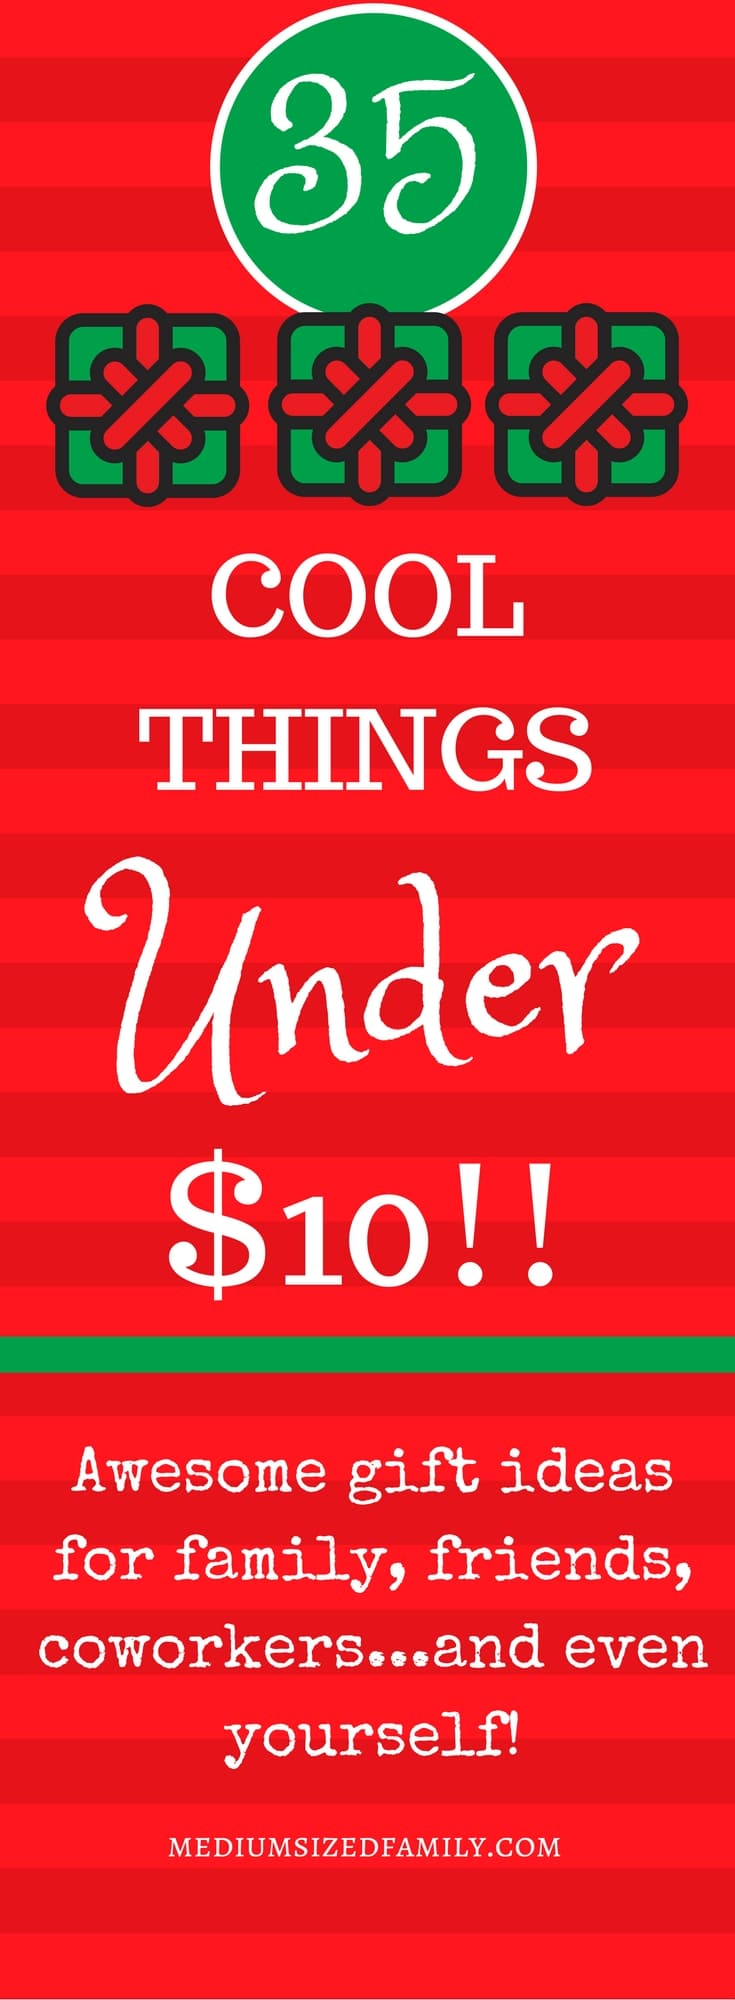 You'll be wowed by this list of gift ideas under $10. There's really something here for everybody!